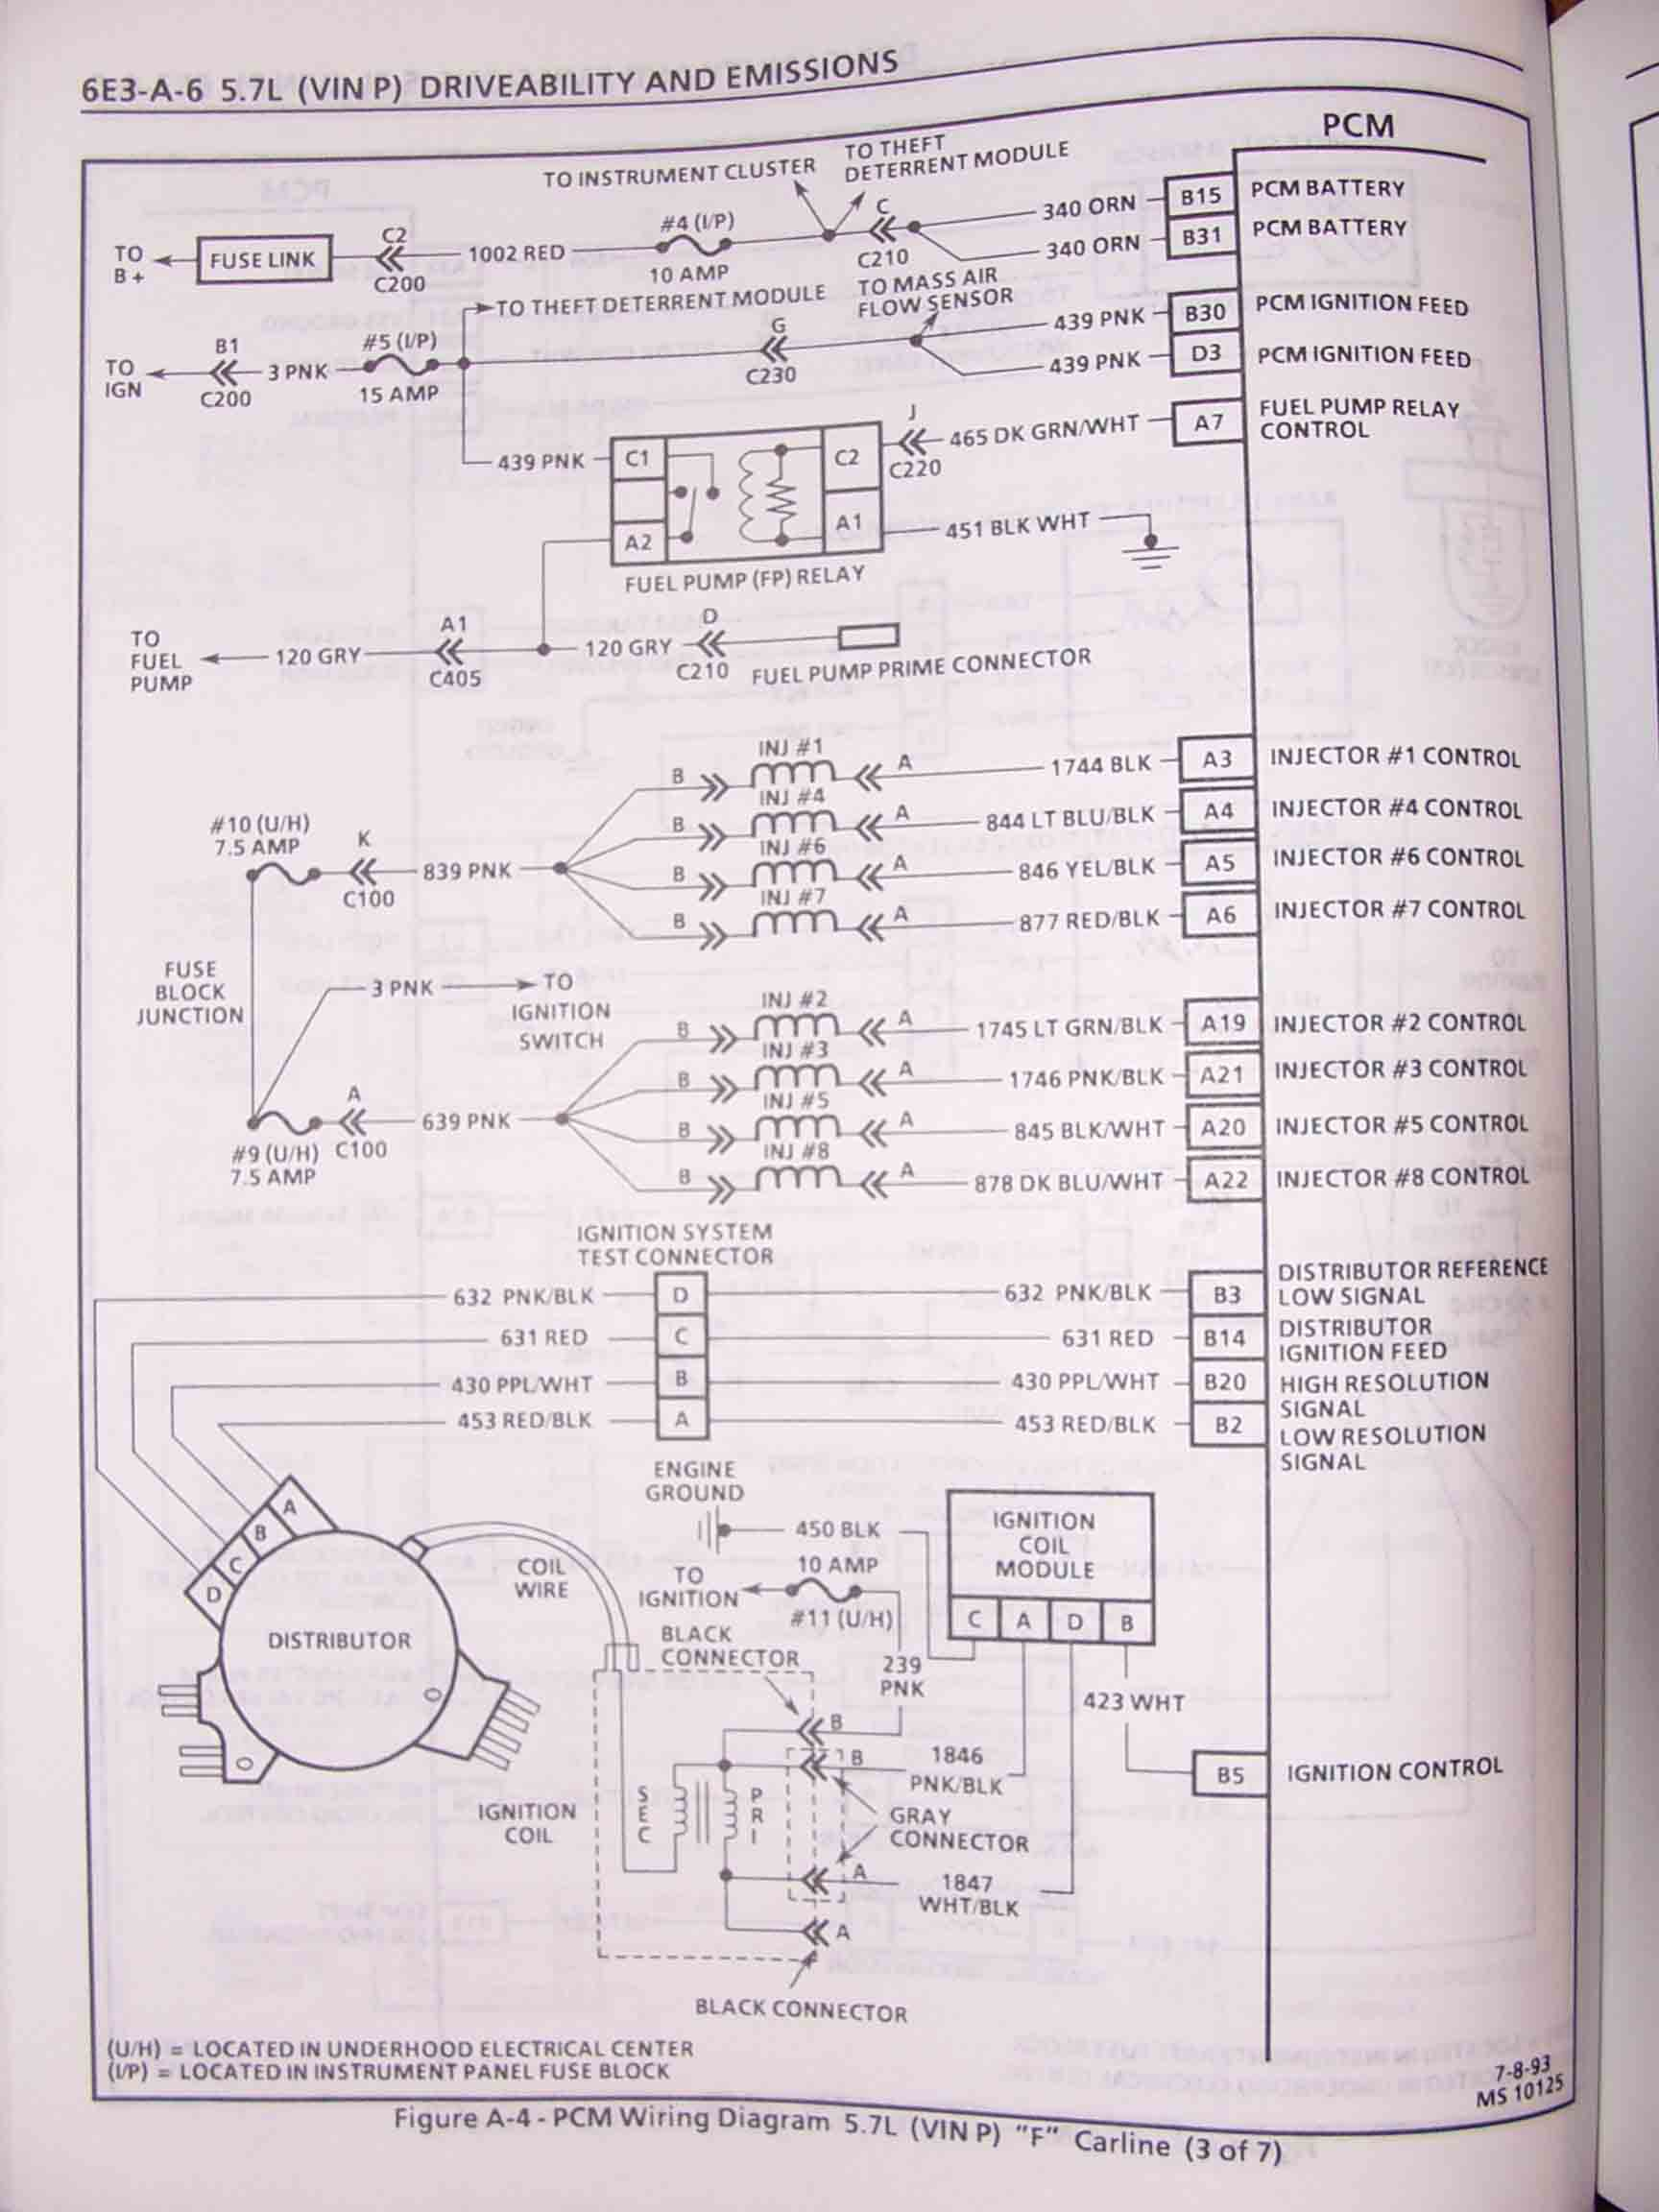 1972 Corvette Wiring Diagram 95 Archive Of Automotive Diagrams Schematics Rh Thyl Co Uk